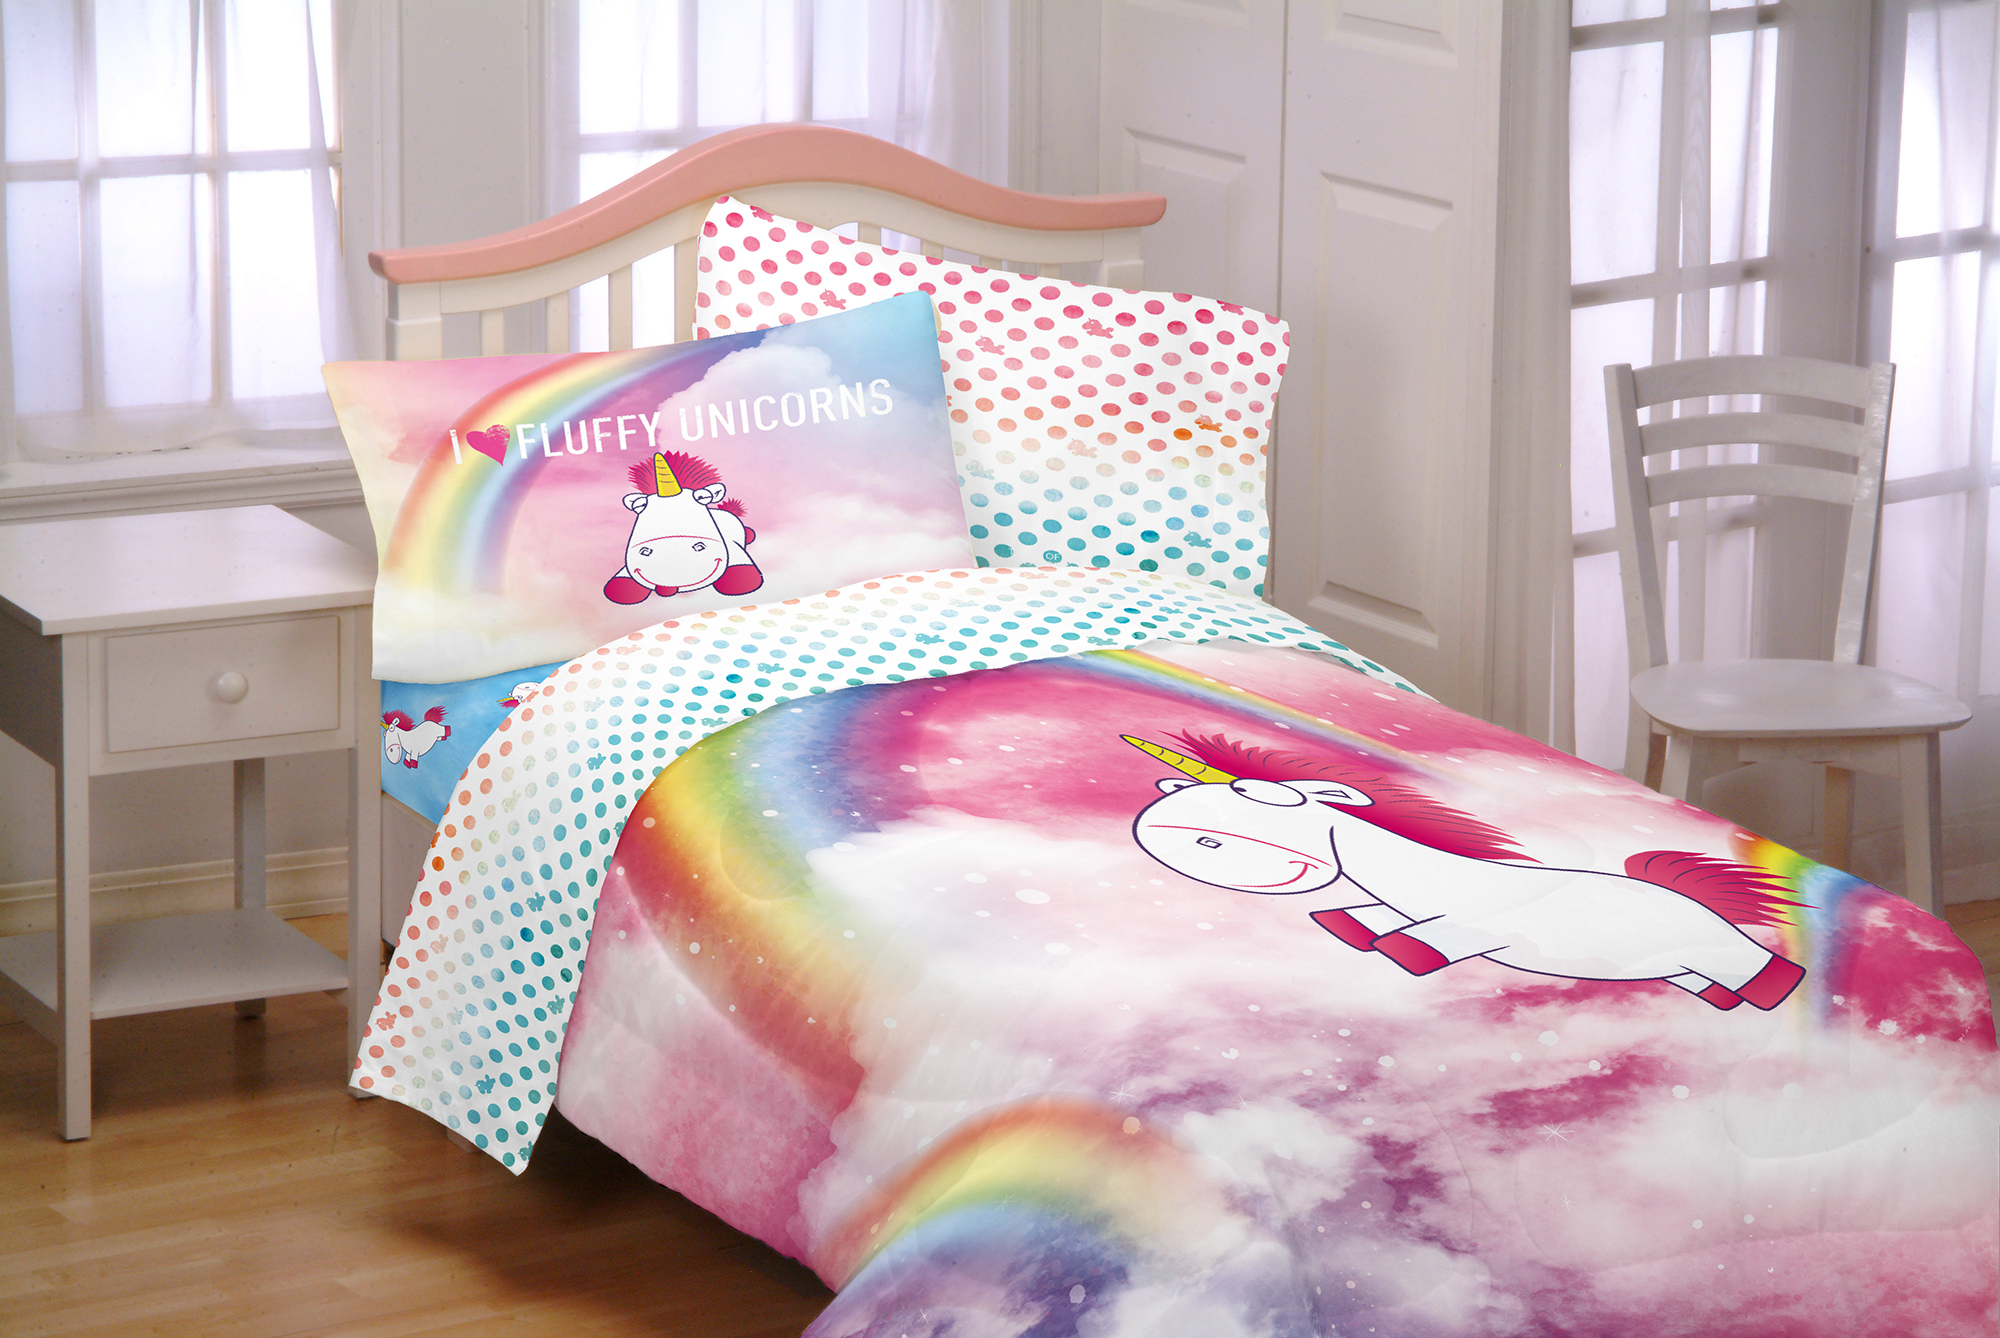 bed ponden zoom pink home folk collection previousnext catherine quiltset bedding lansfield jbq cut clk out unicorn